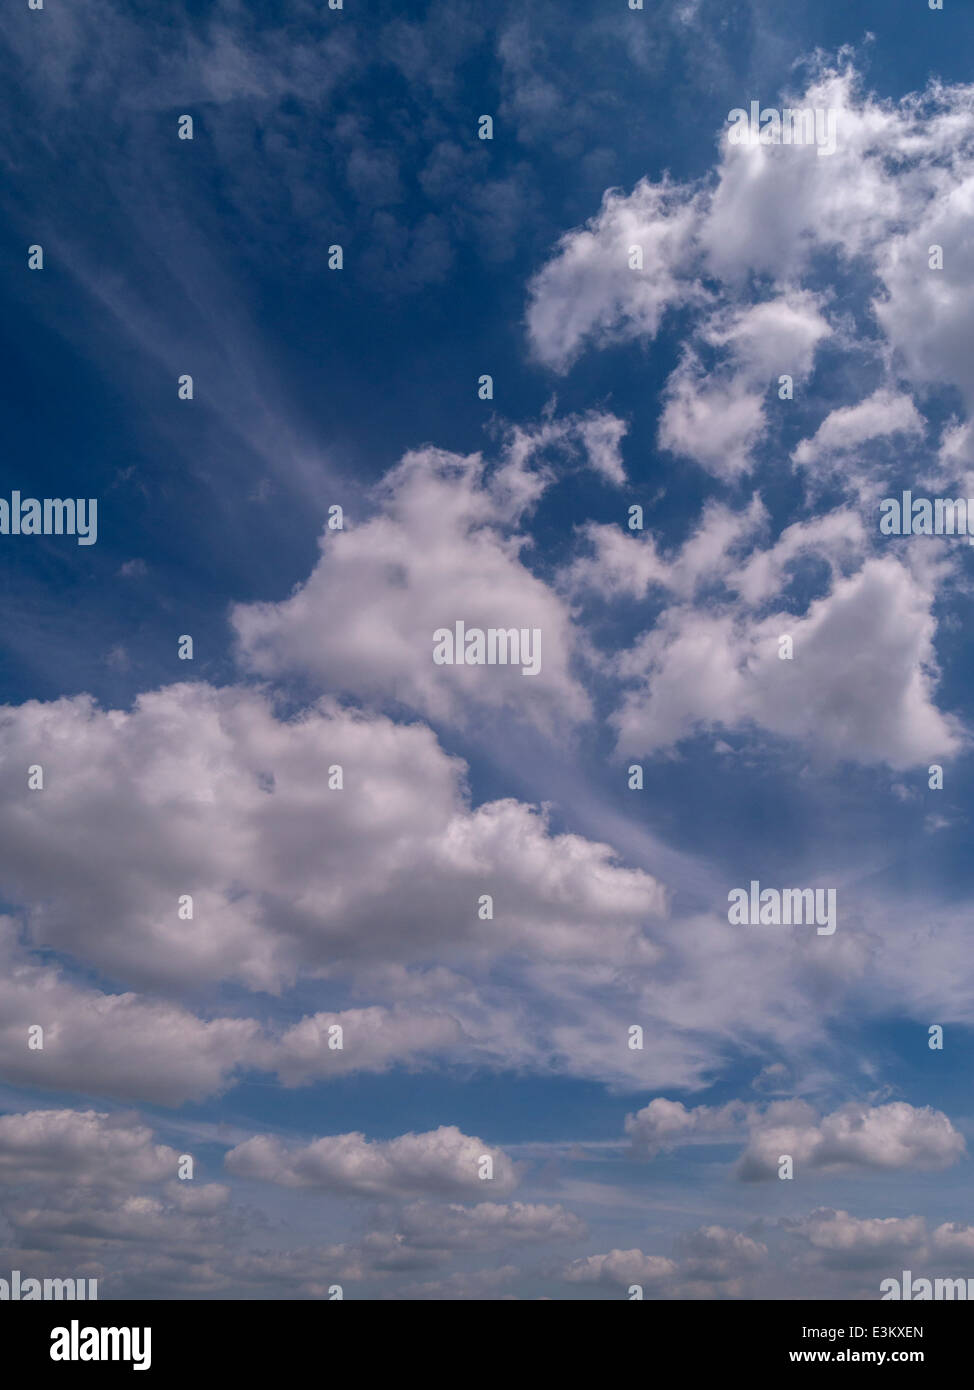 White cumulus clouds against deep blue sky with wispy high level cirrus clouds - Stock Image